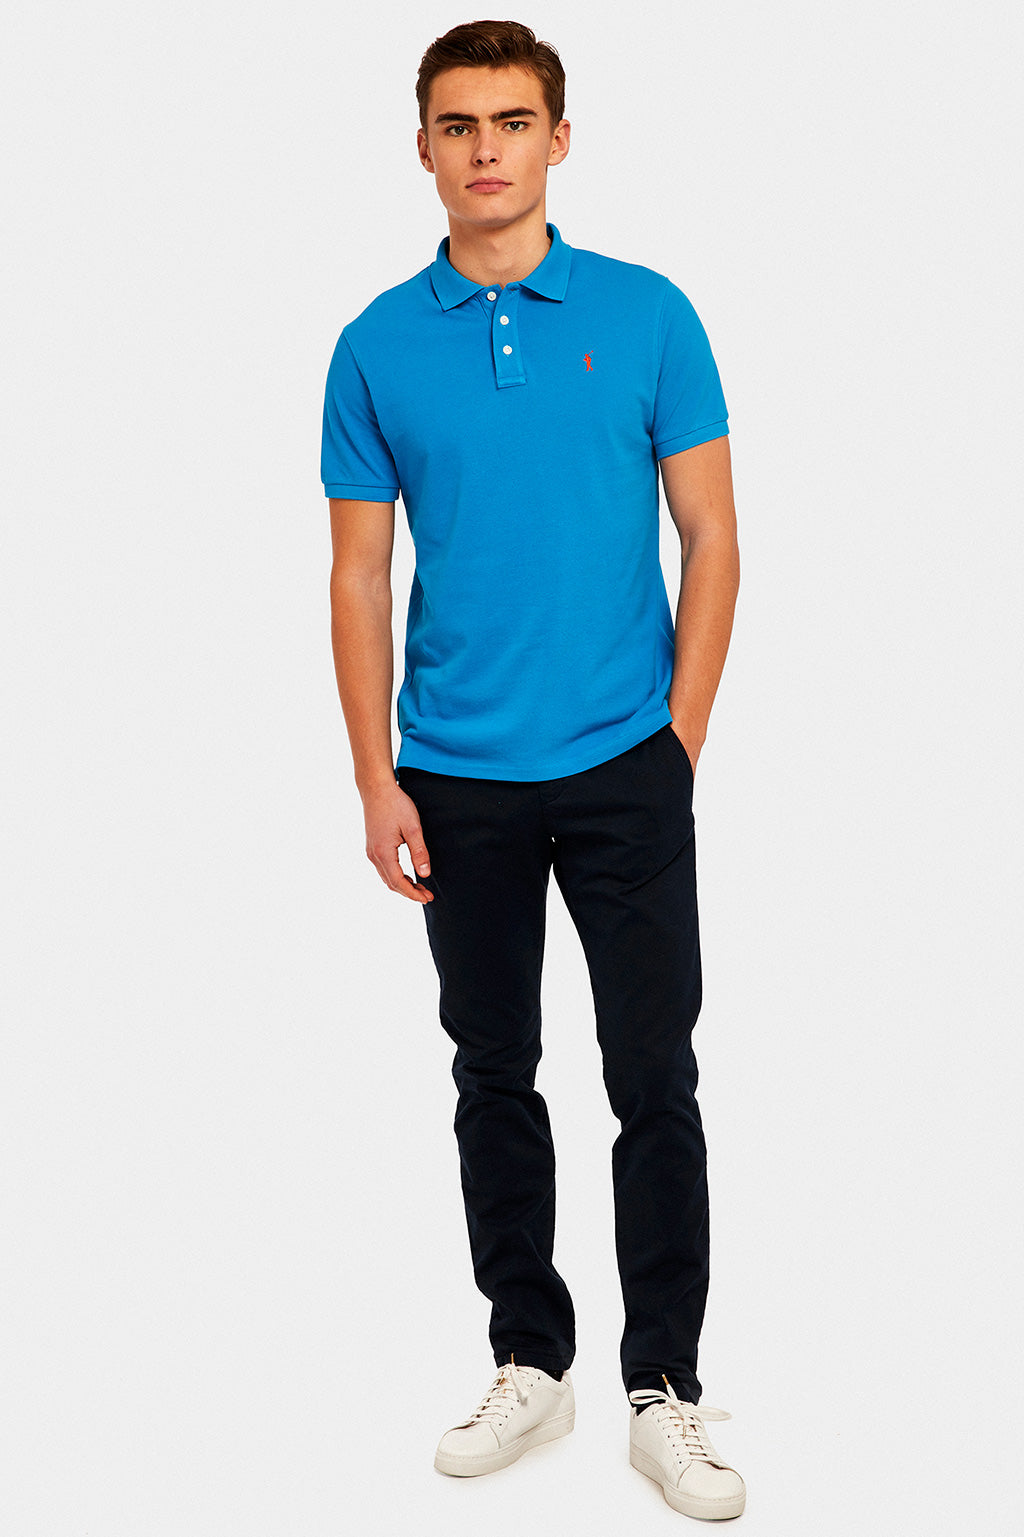 Poloshirt blau Custom fit